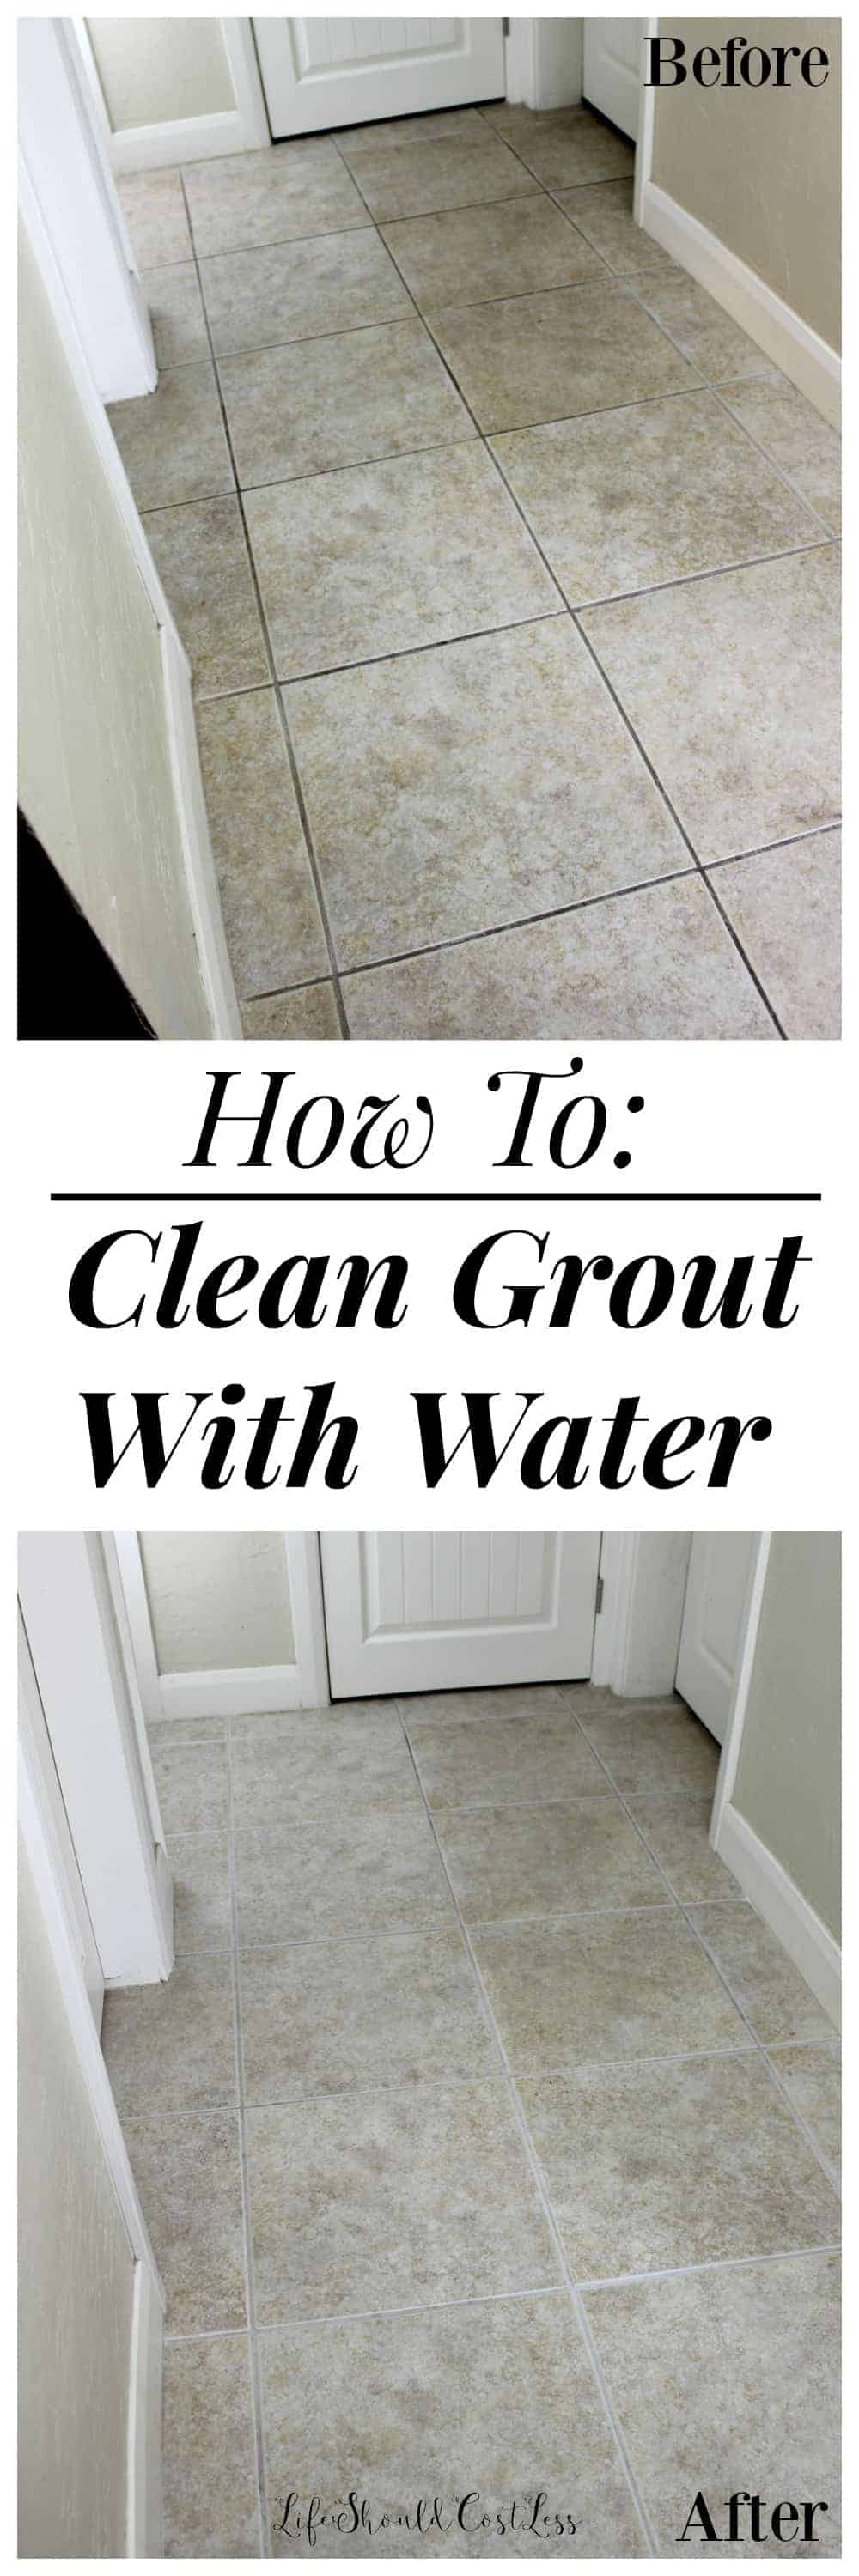 How to clean grout with water the easiest way to clean grout ever that to me is a winwinhello a cheap and non toxic way to clean grout it is more than worth sharing with all of my readers too dailygadgetfo Image collections